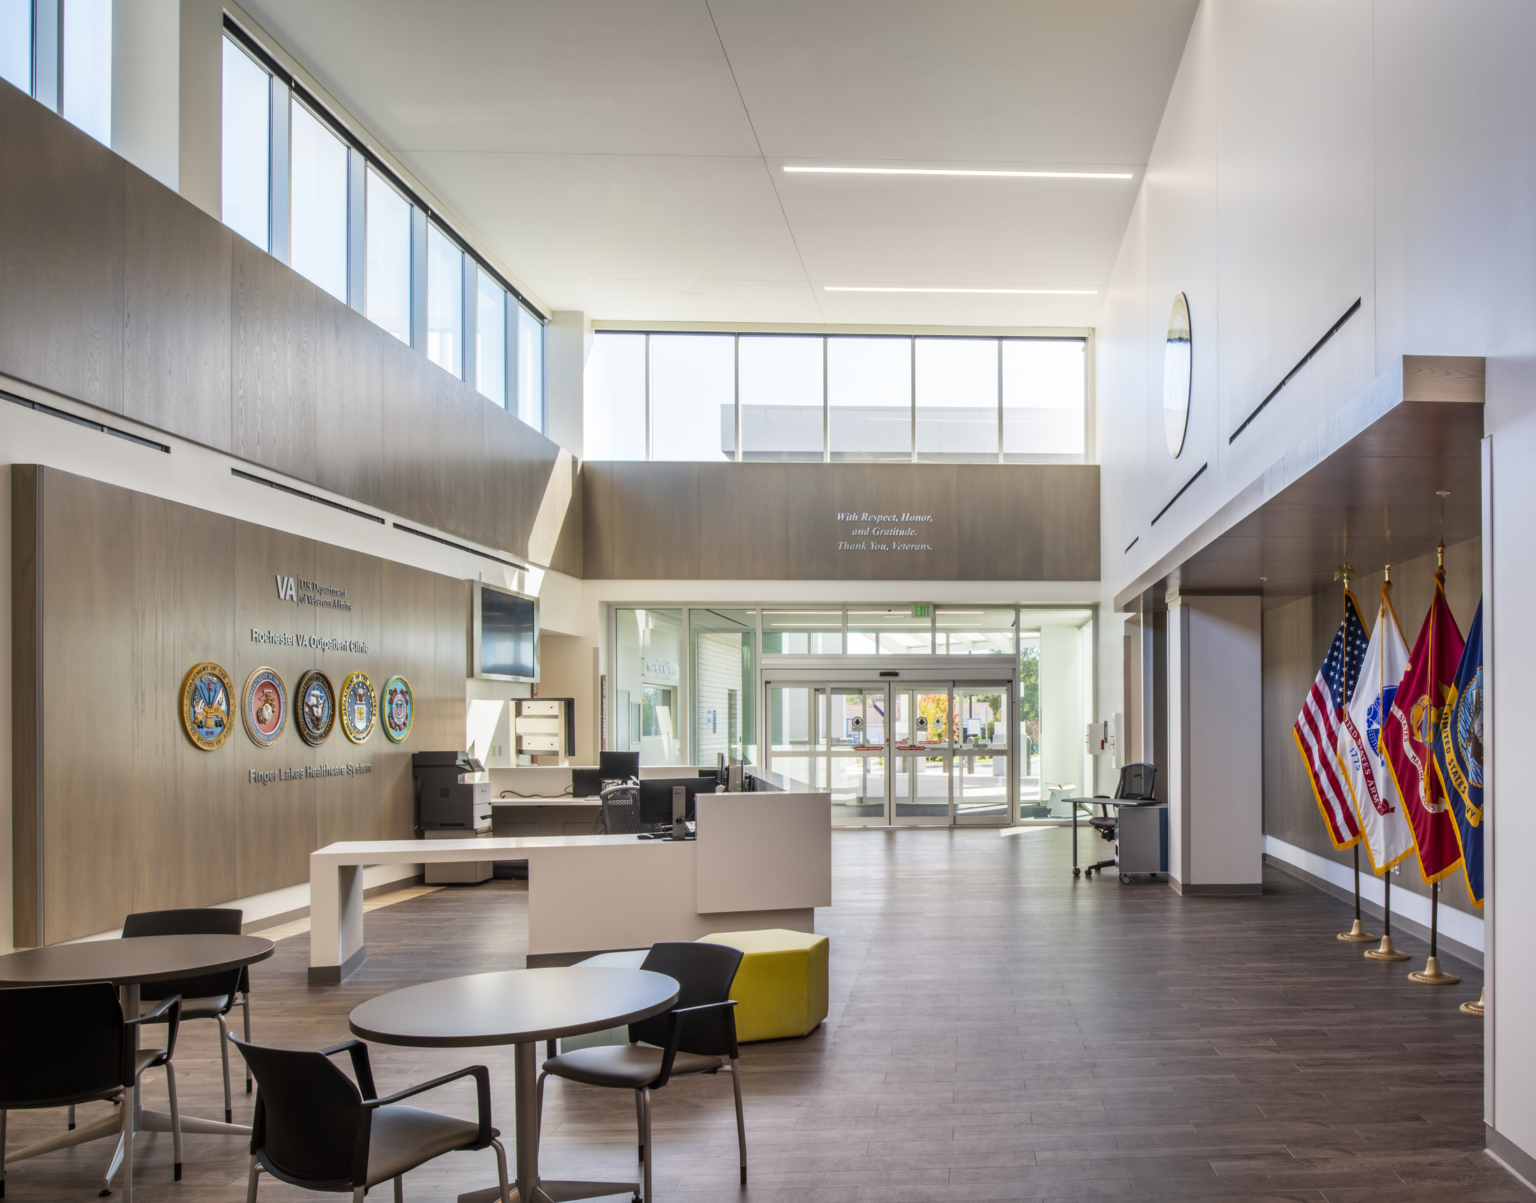 Lobby at VA Rochester Calkins Outpatient Clinic